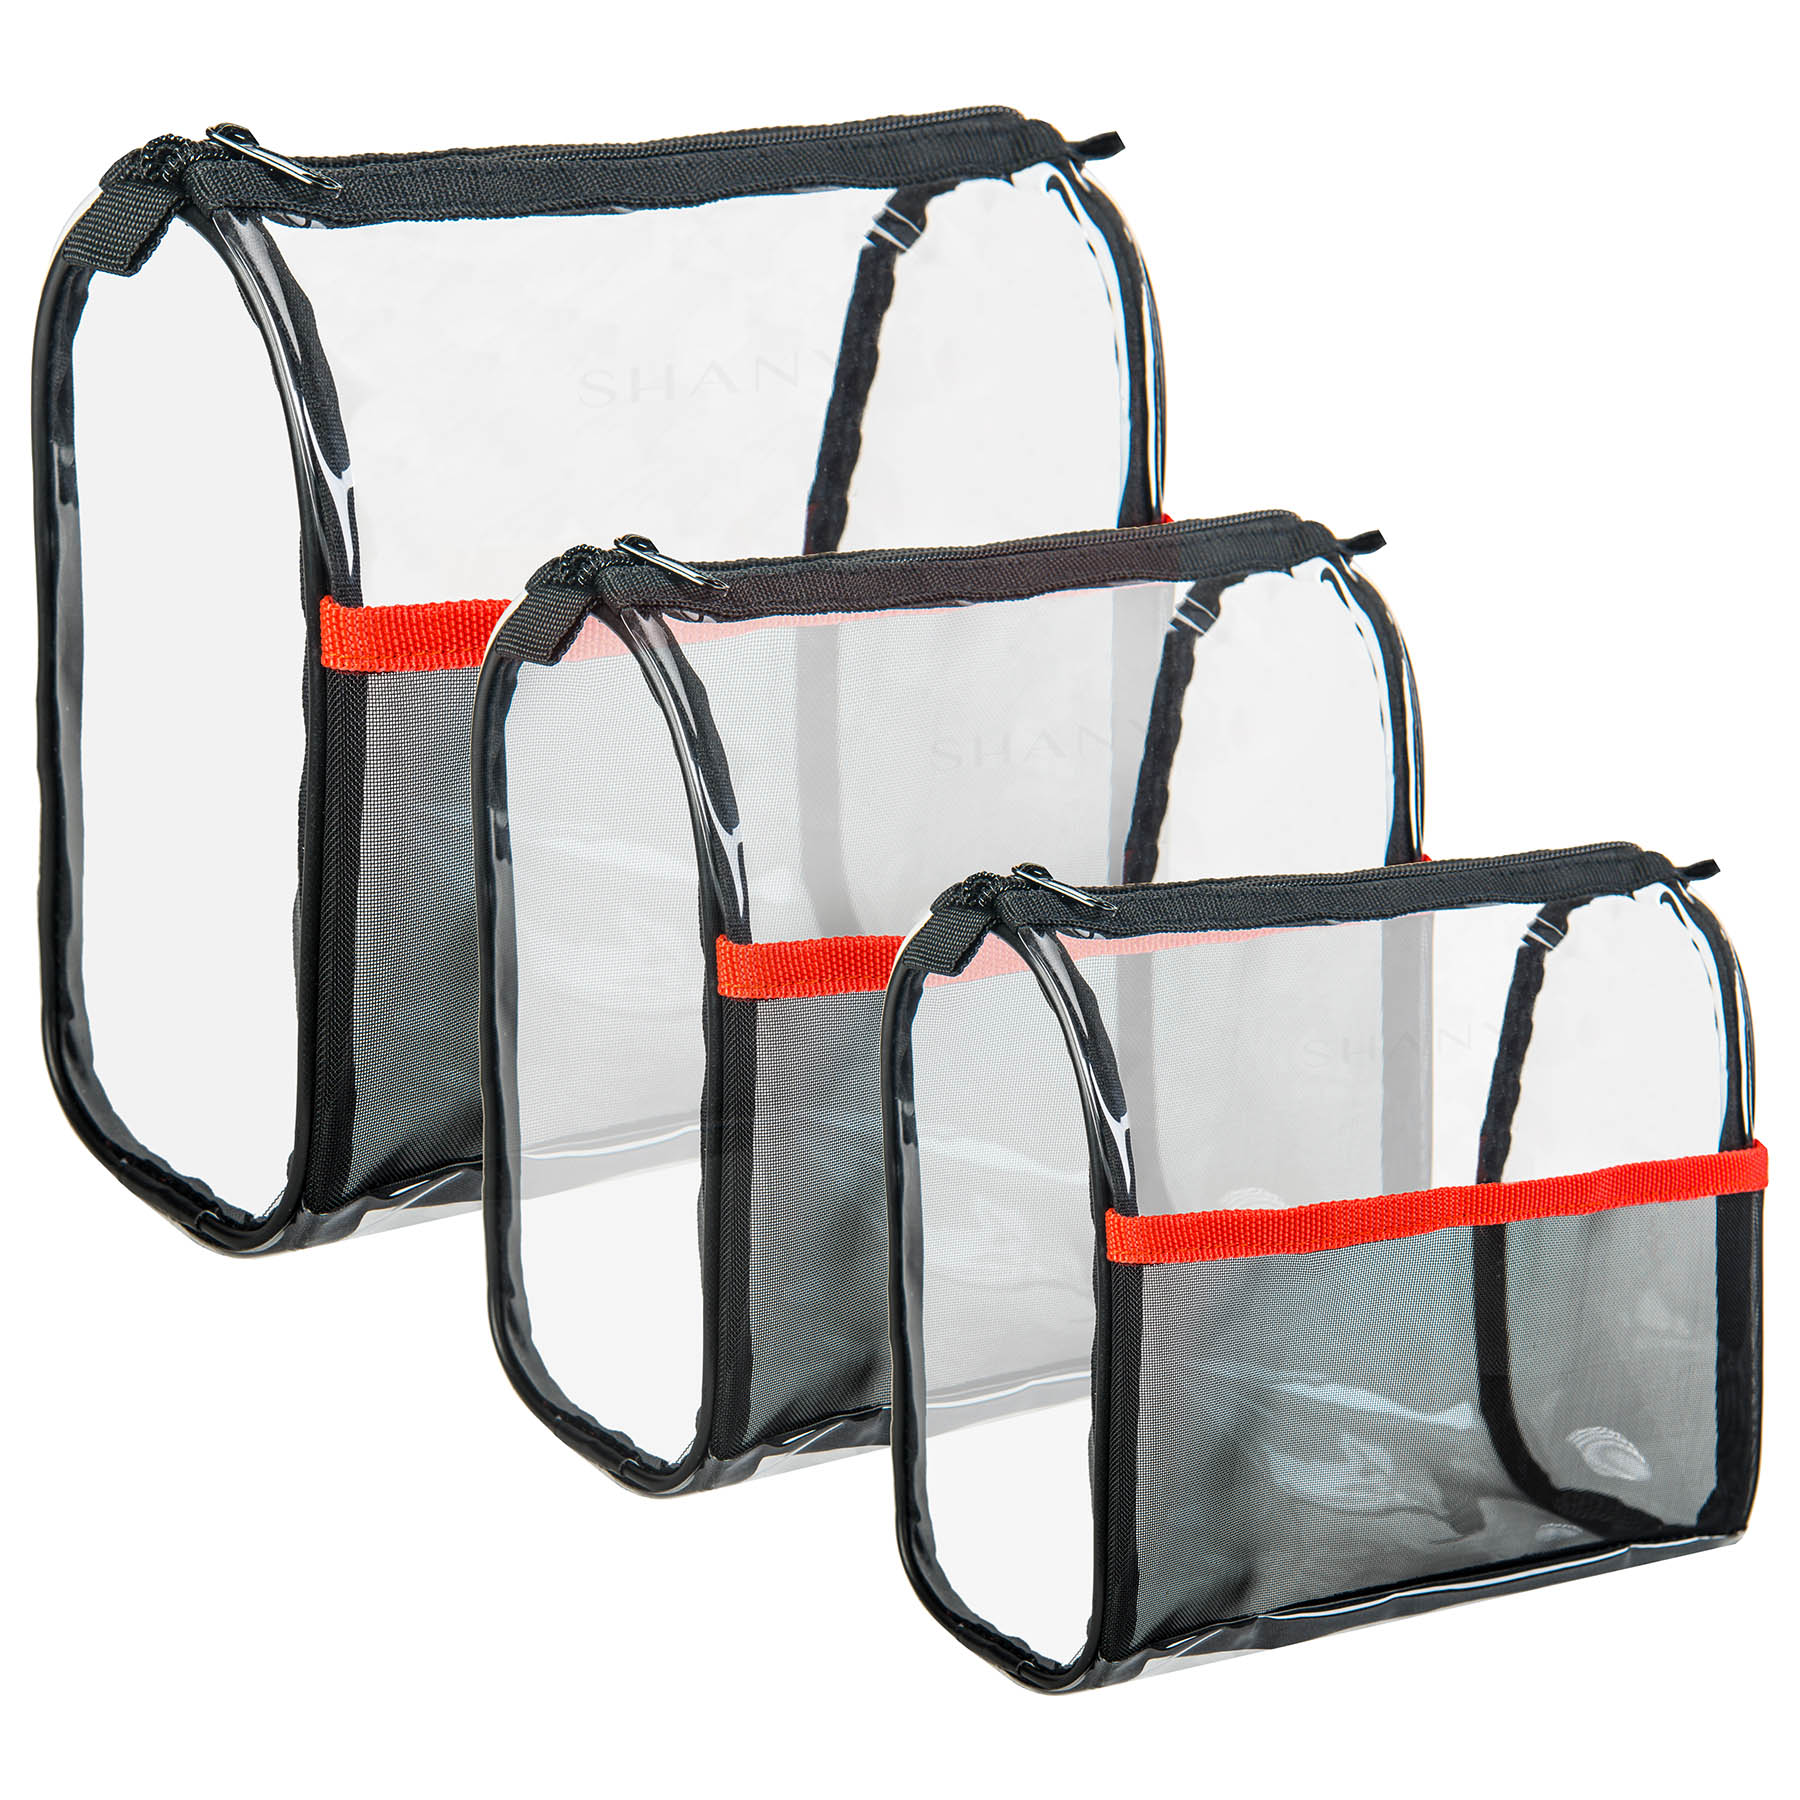 SHANY Travel Makeup Bags - Clear Cosmetics Bags - 3 Assorted sizes - Weekend Adventure Trio